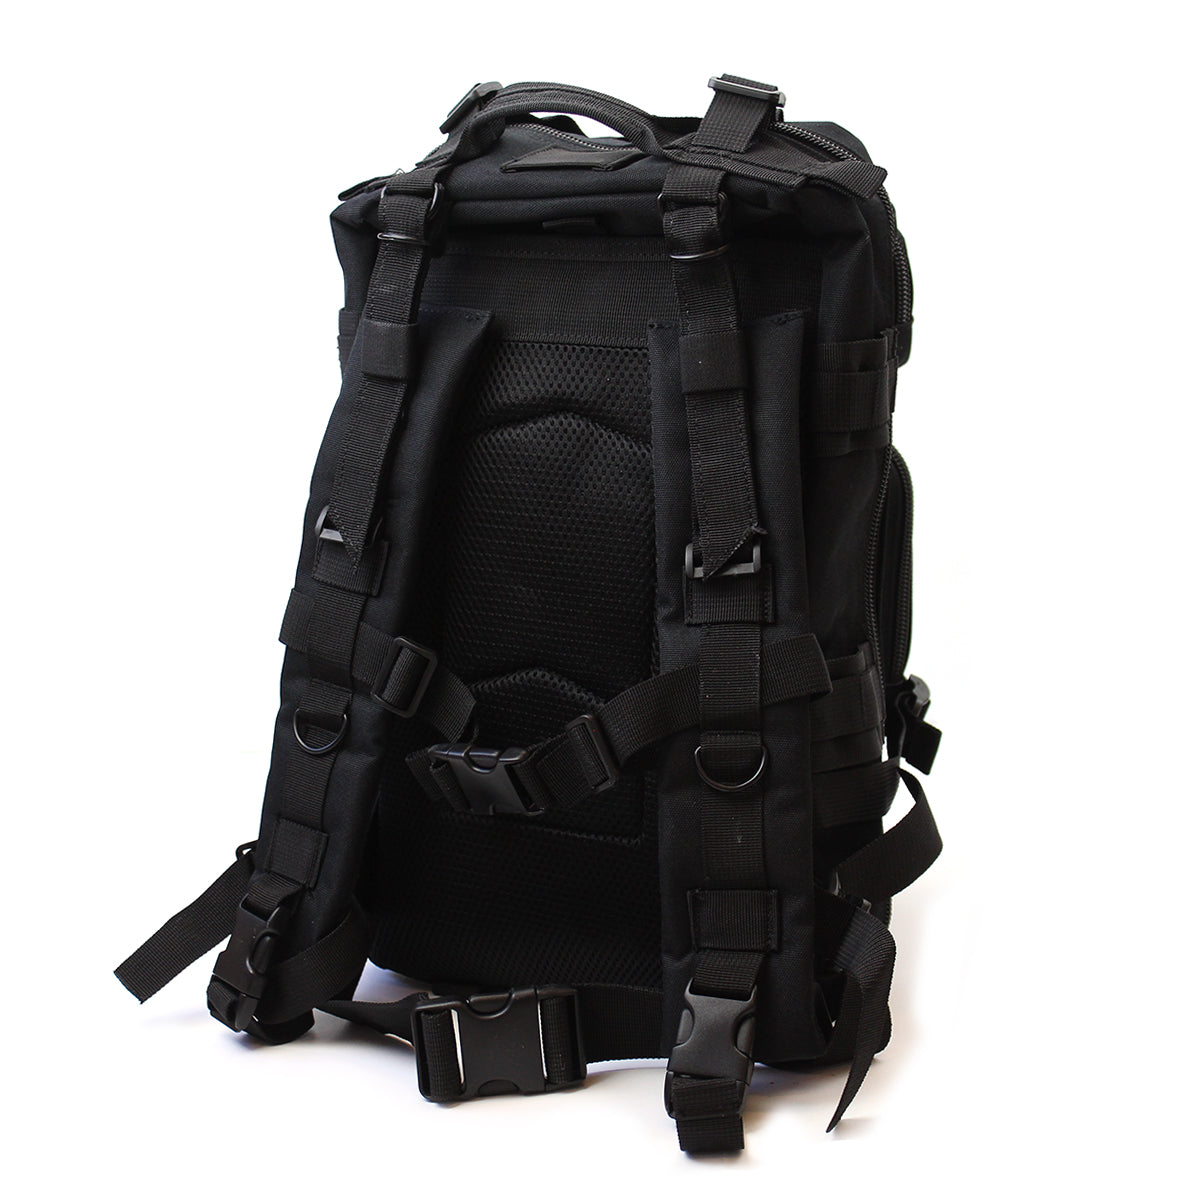 4TH SURPLUS - IN4MATION MEDIUM TACTICAL BACKPACK (BLK)